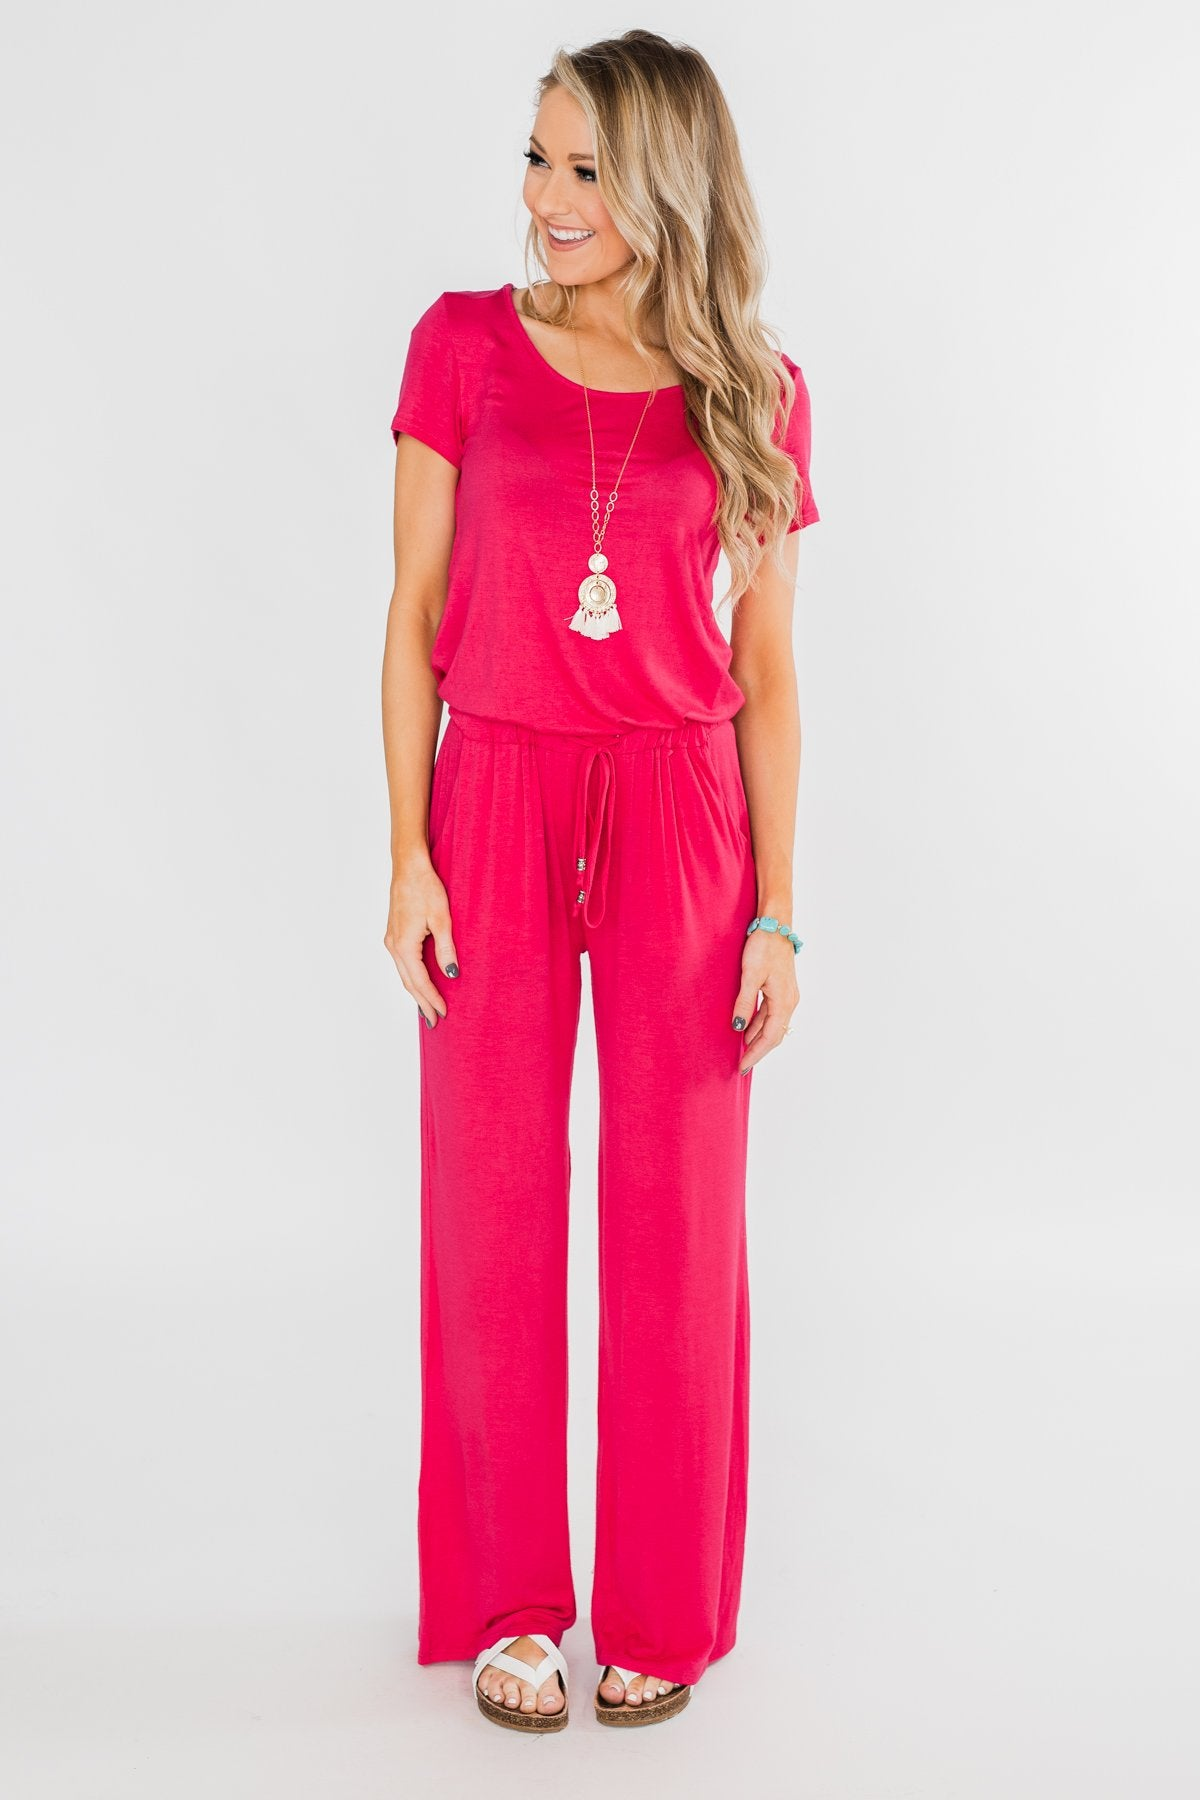 Short Sleeve Drawstring Jumpsuit- Fuchsia